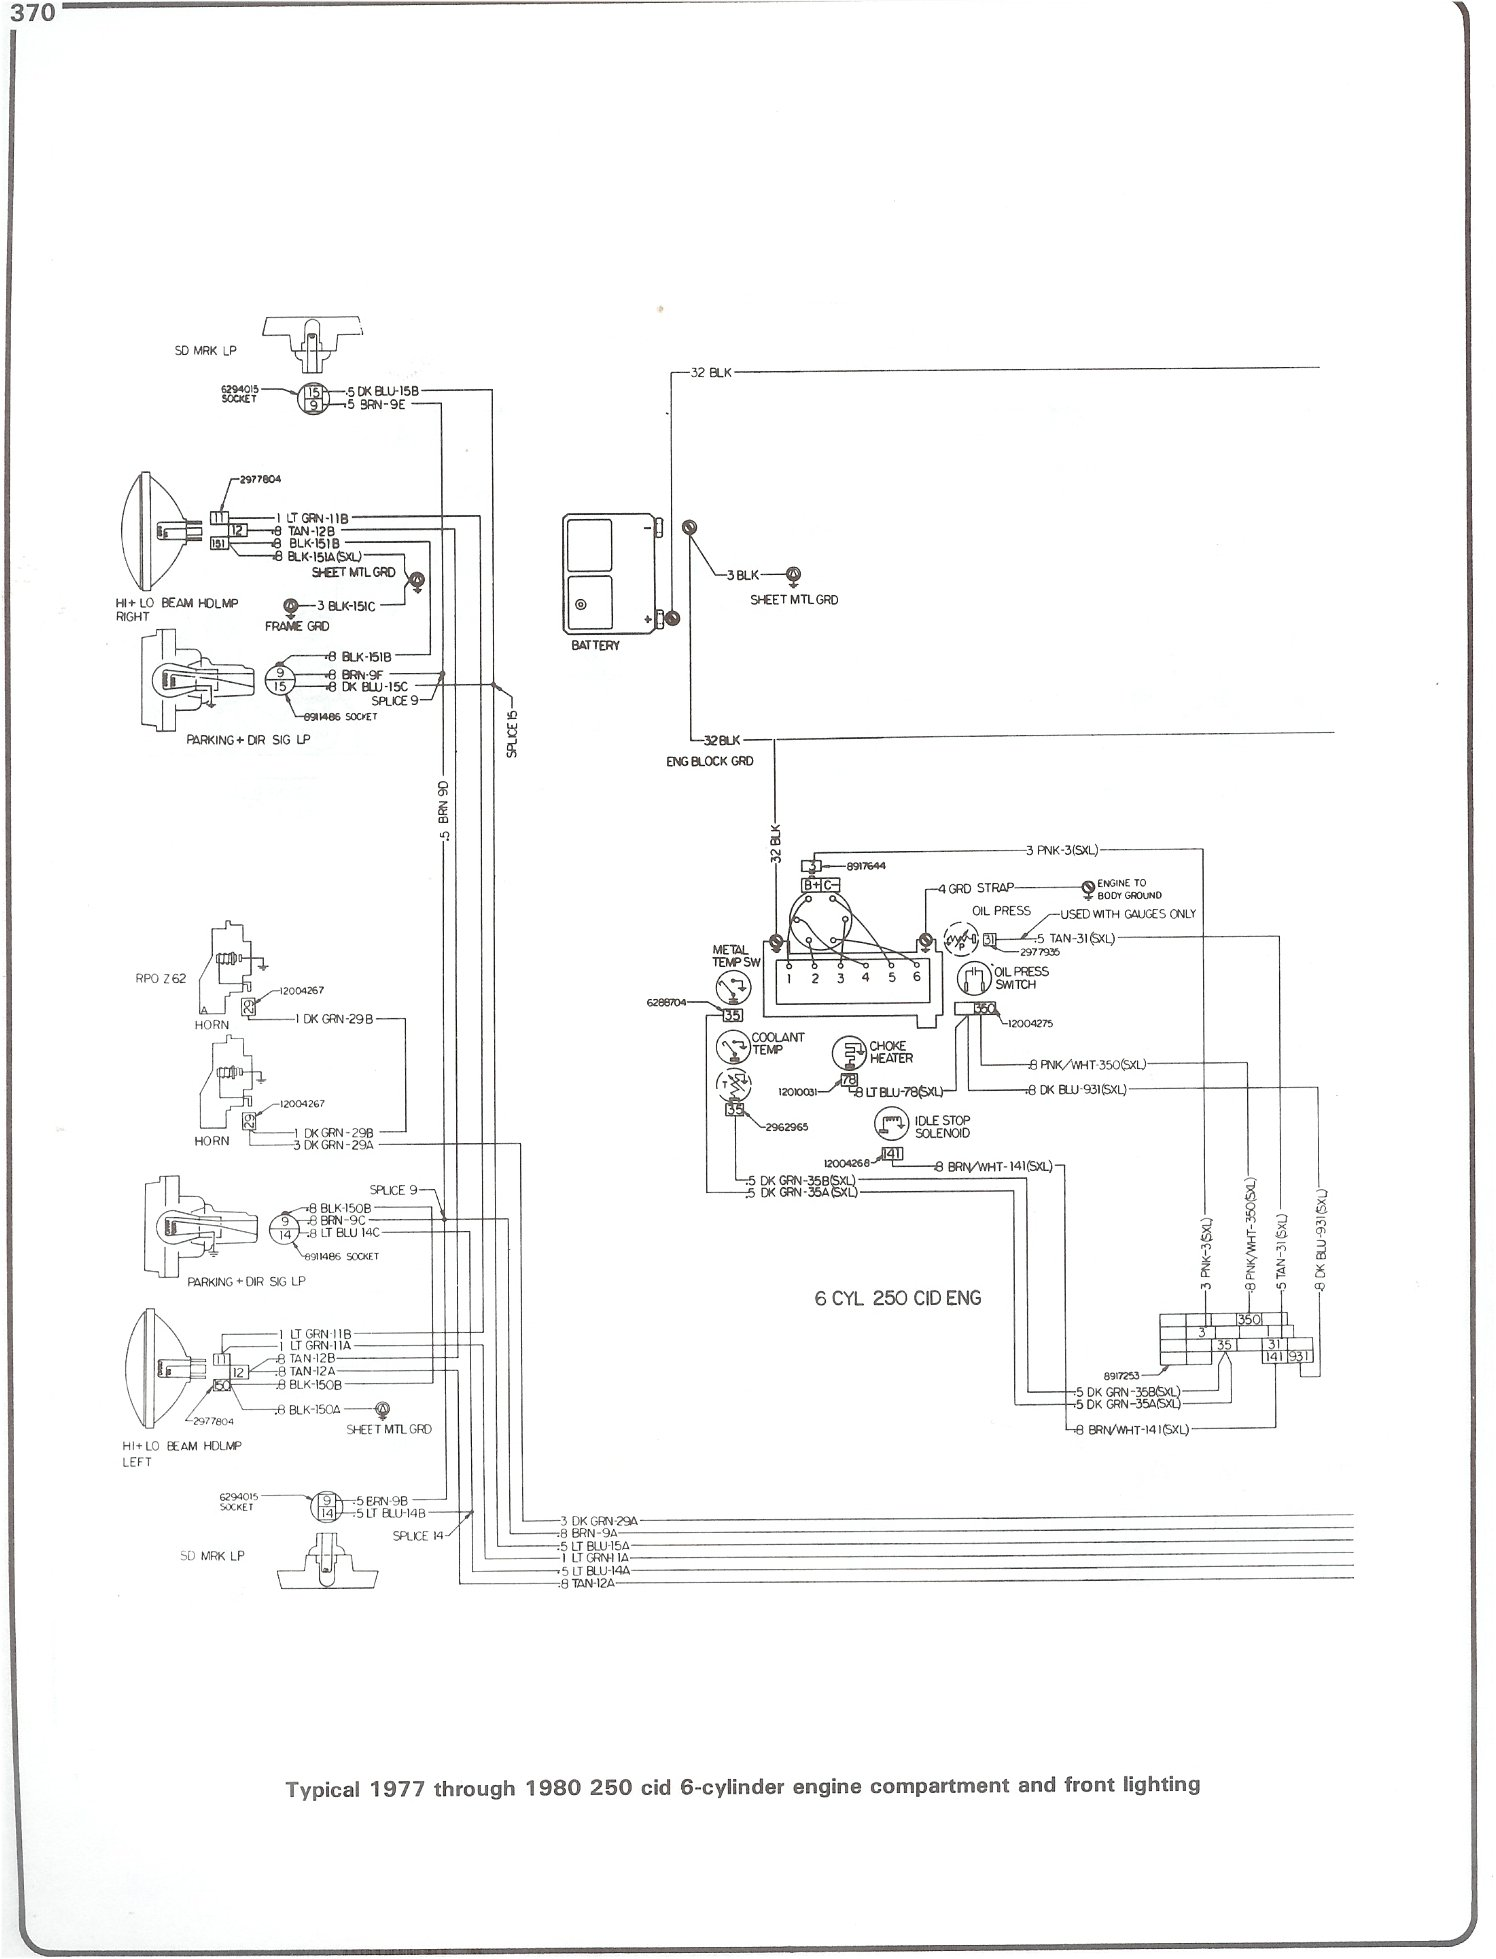 77 80_250_I6_eng_frt_light complete 73 87 wiring diagrams 2008 Chevy Silverado Wiring Diagram at bayanpartner.co